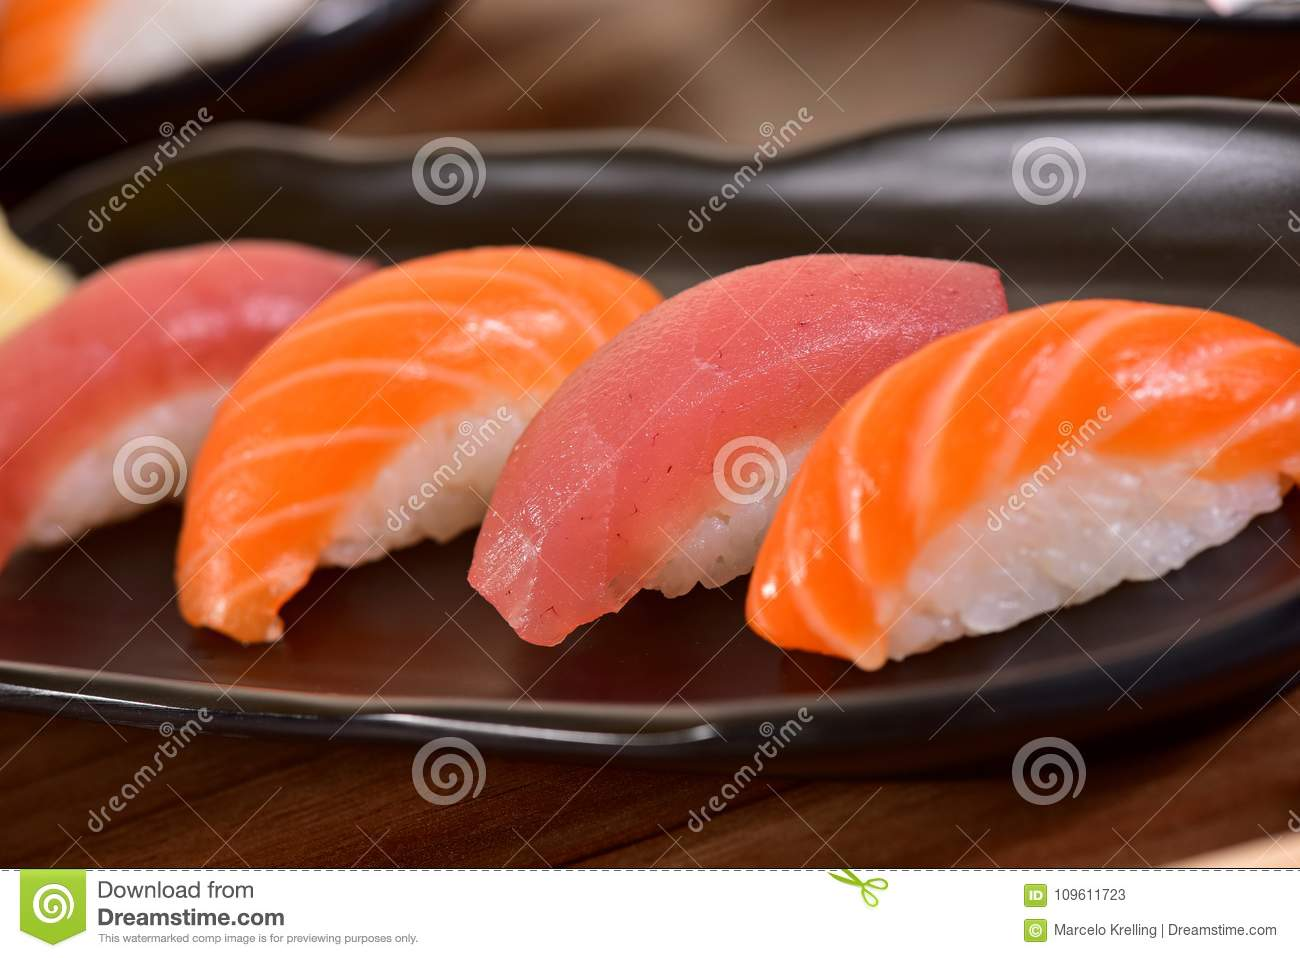 Tuna And Salmon Nigiri Sushi Stock Image Image Of Restaurant Cuisine 109611723